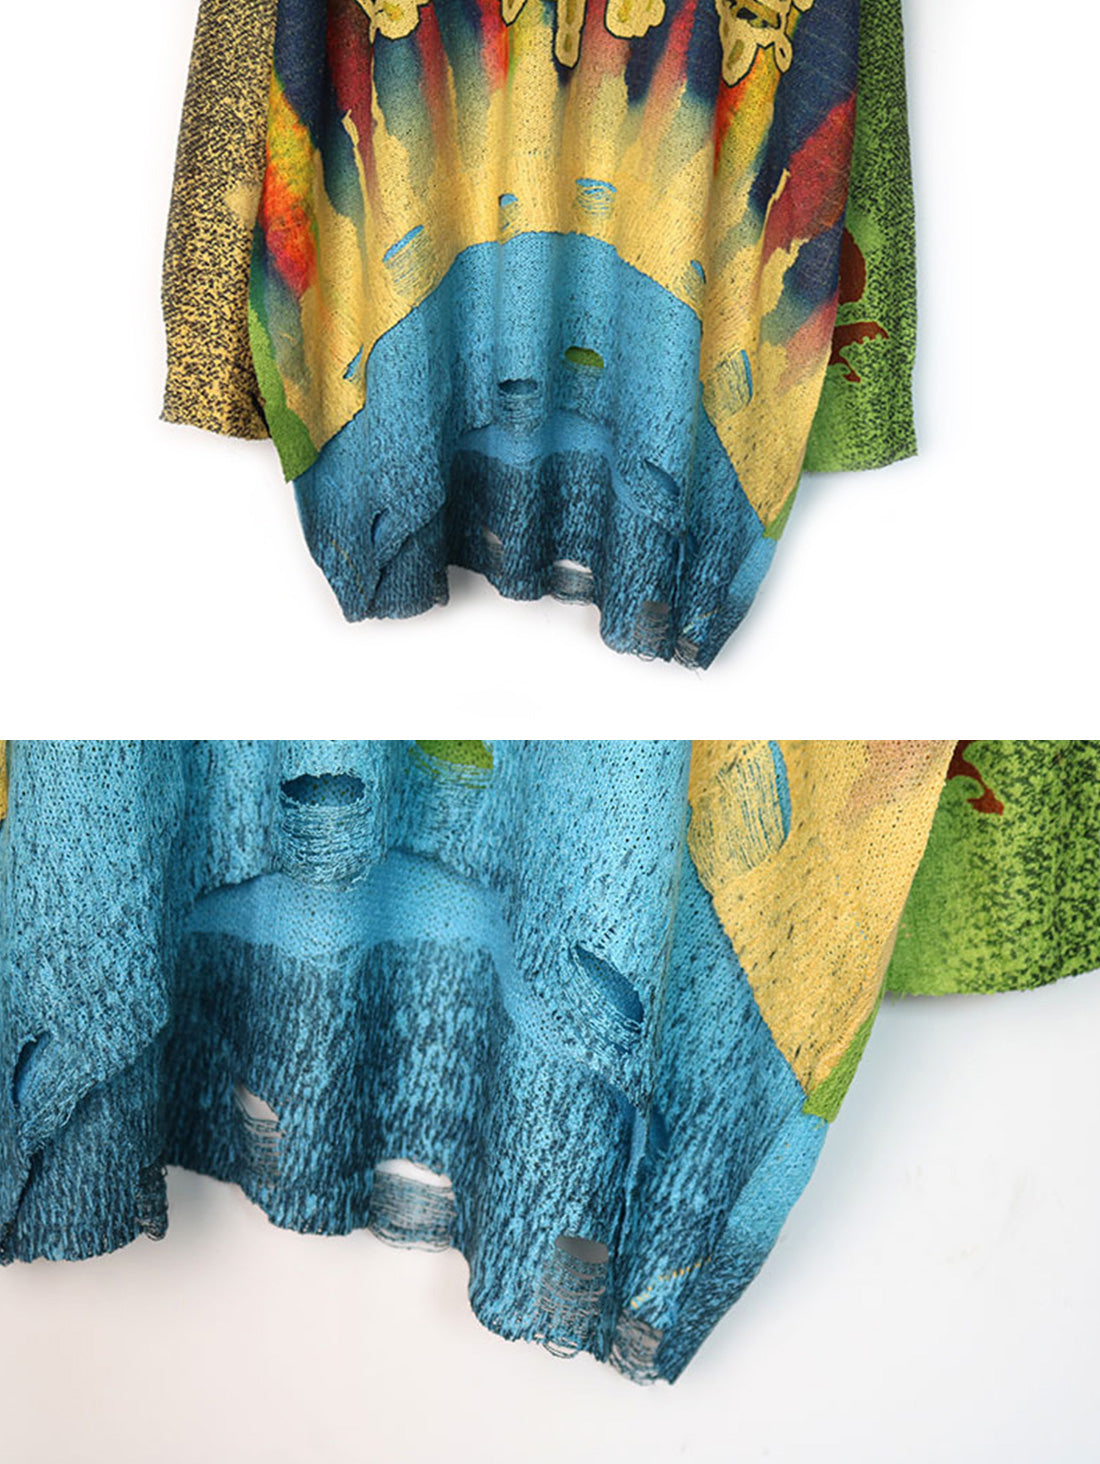 Call For Peace Sweater Top Details 3